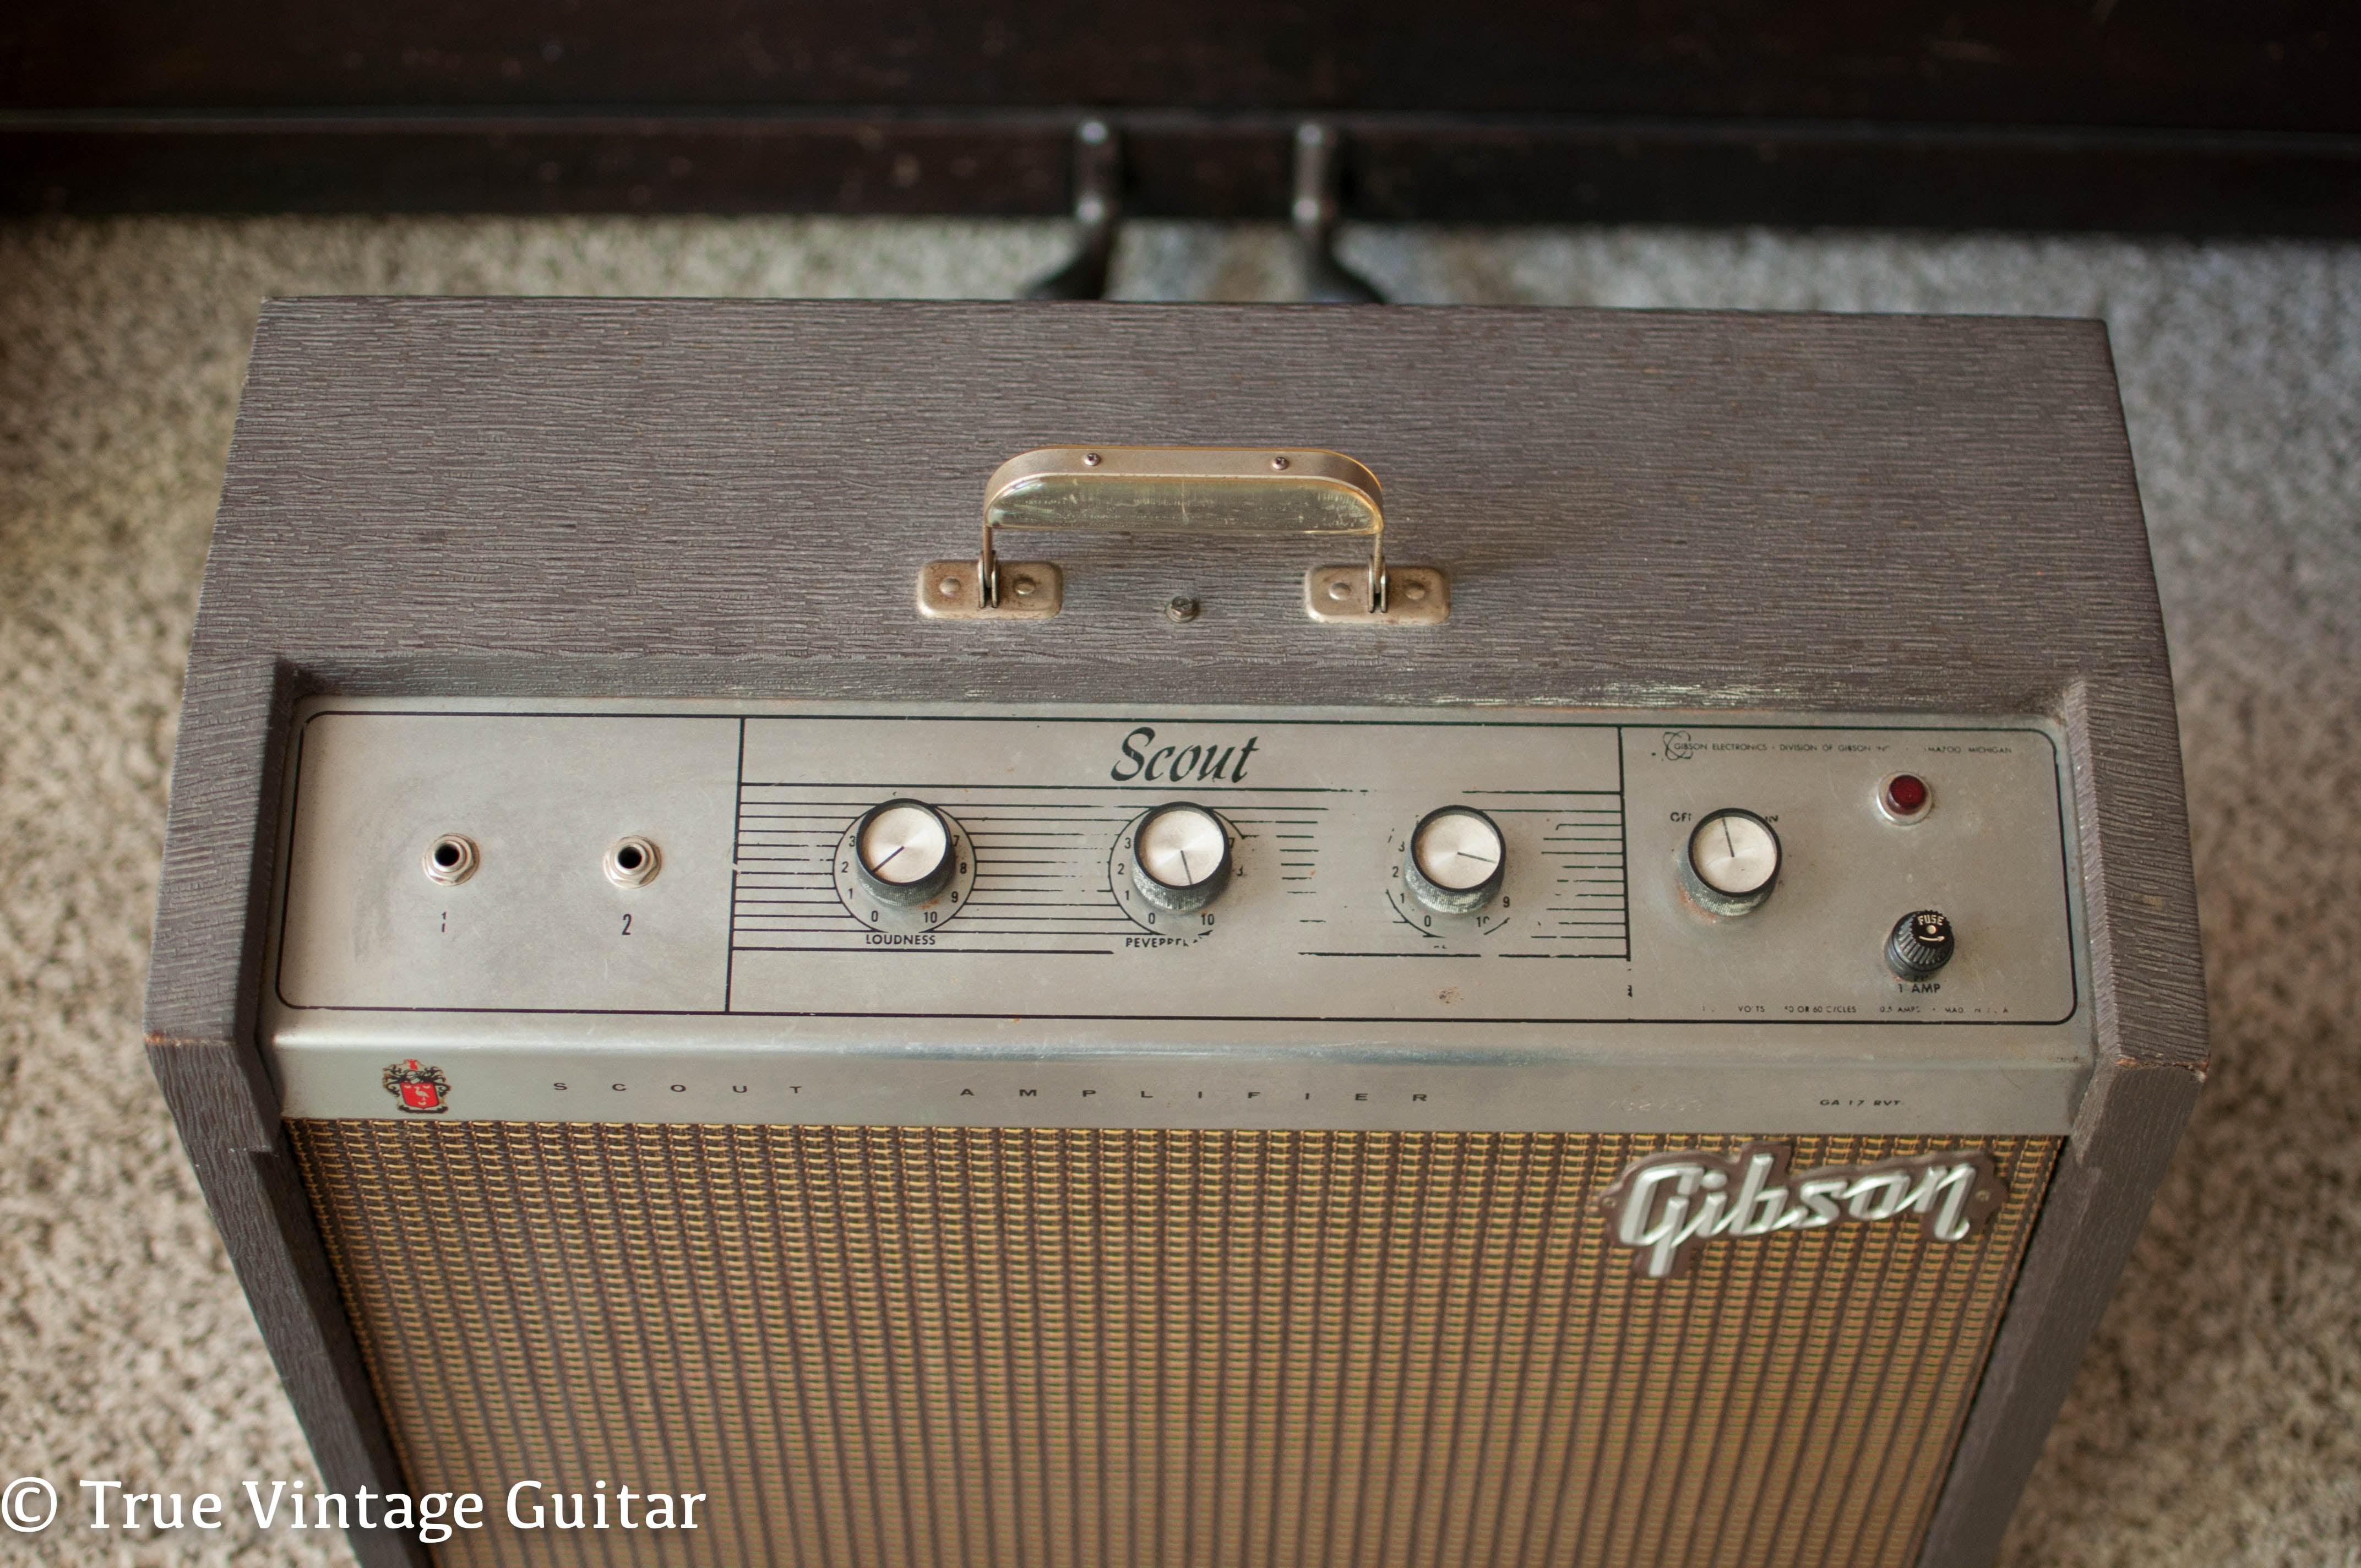 Vintage 1964 Gibson guitar amp Scout